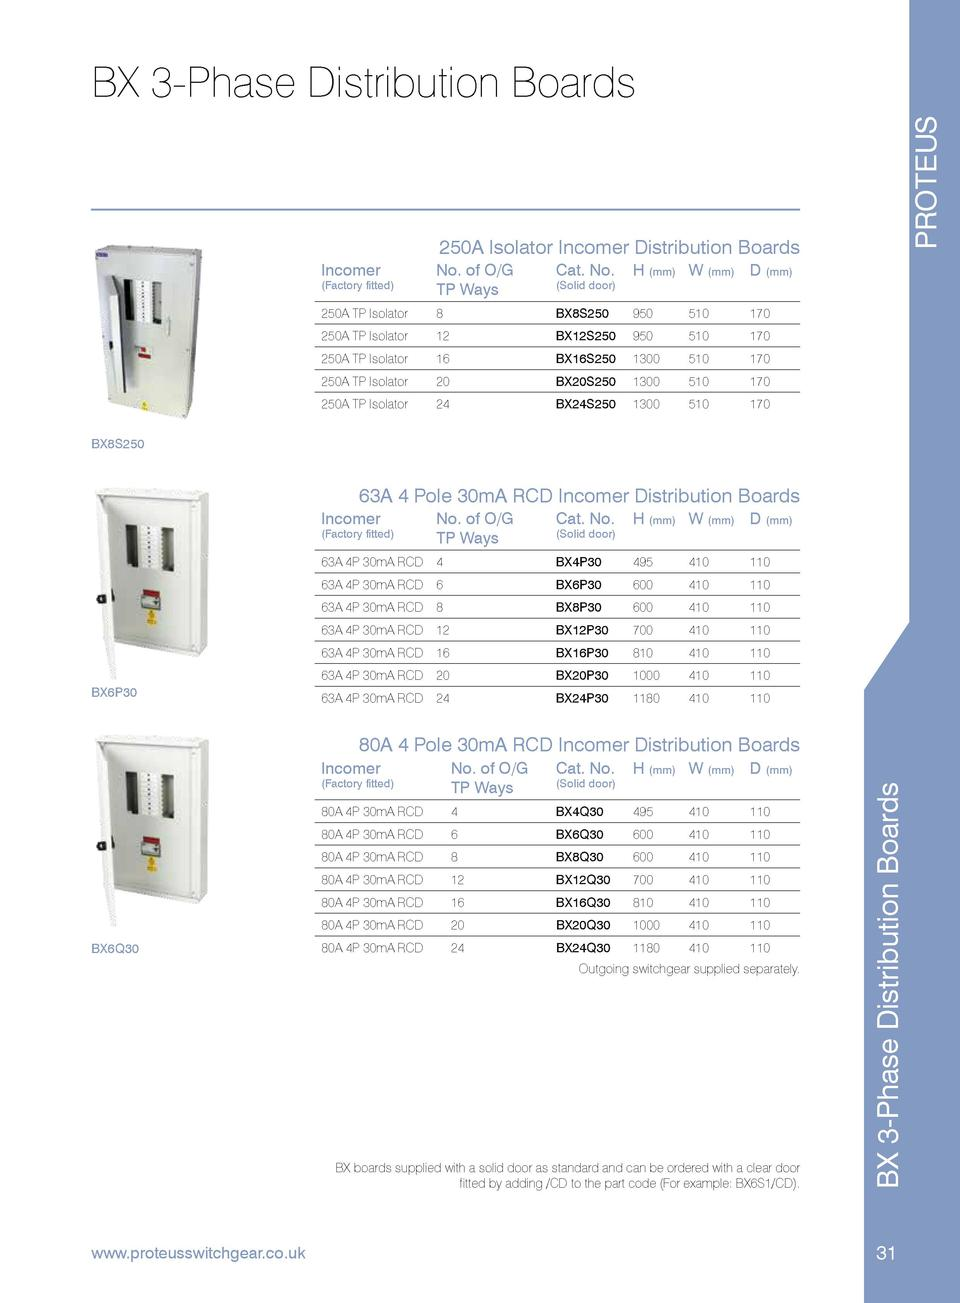 PROTEUS  BX 3-Phase Distribution Boards  250A Isolator Incomer Distribution Boards Incomer   Factory fitted   No. of O G T...